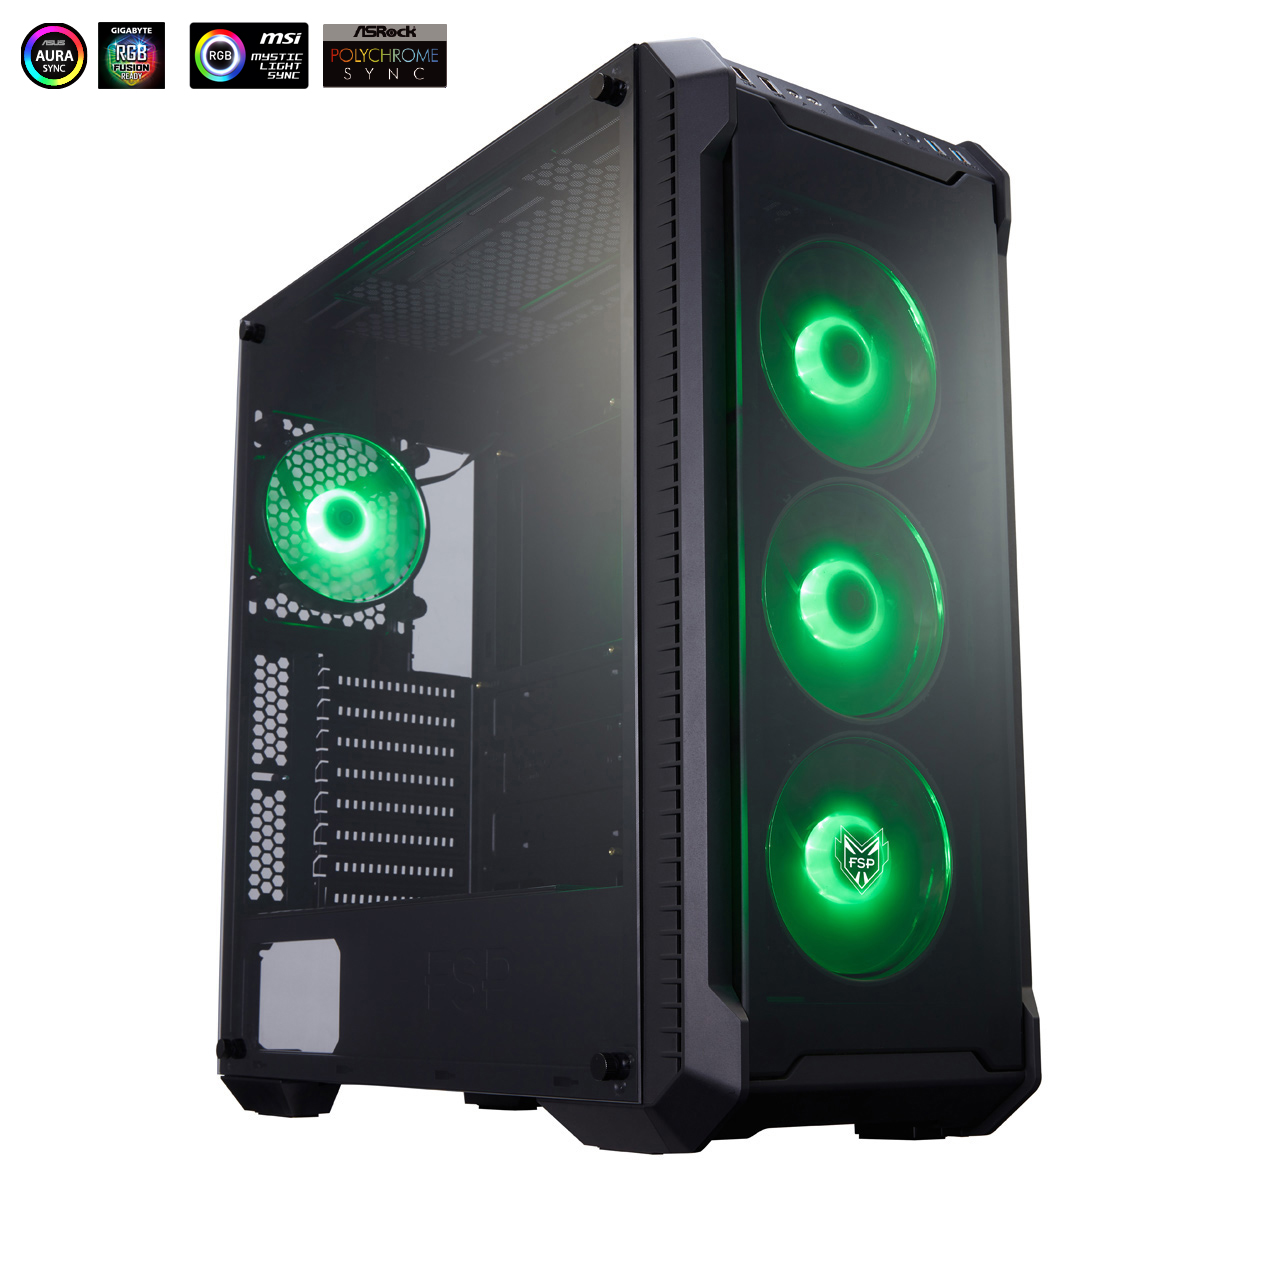 cmt520 case fsplifestyleManaged From Just One Led Controller For Complete Synchronised Control #9